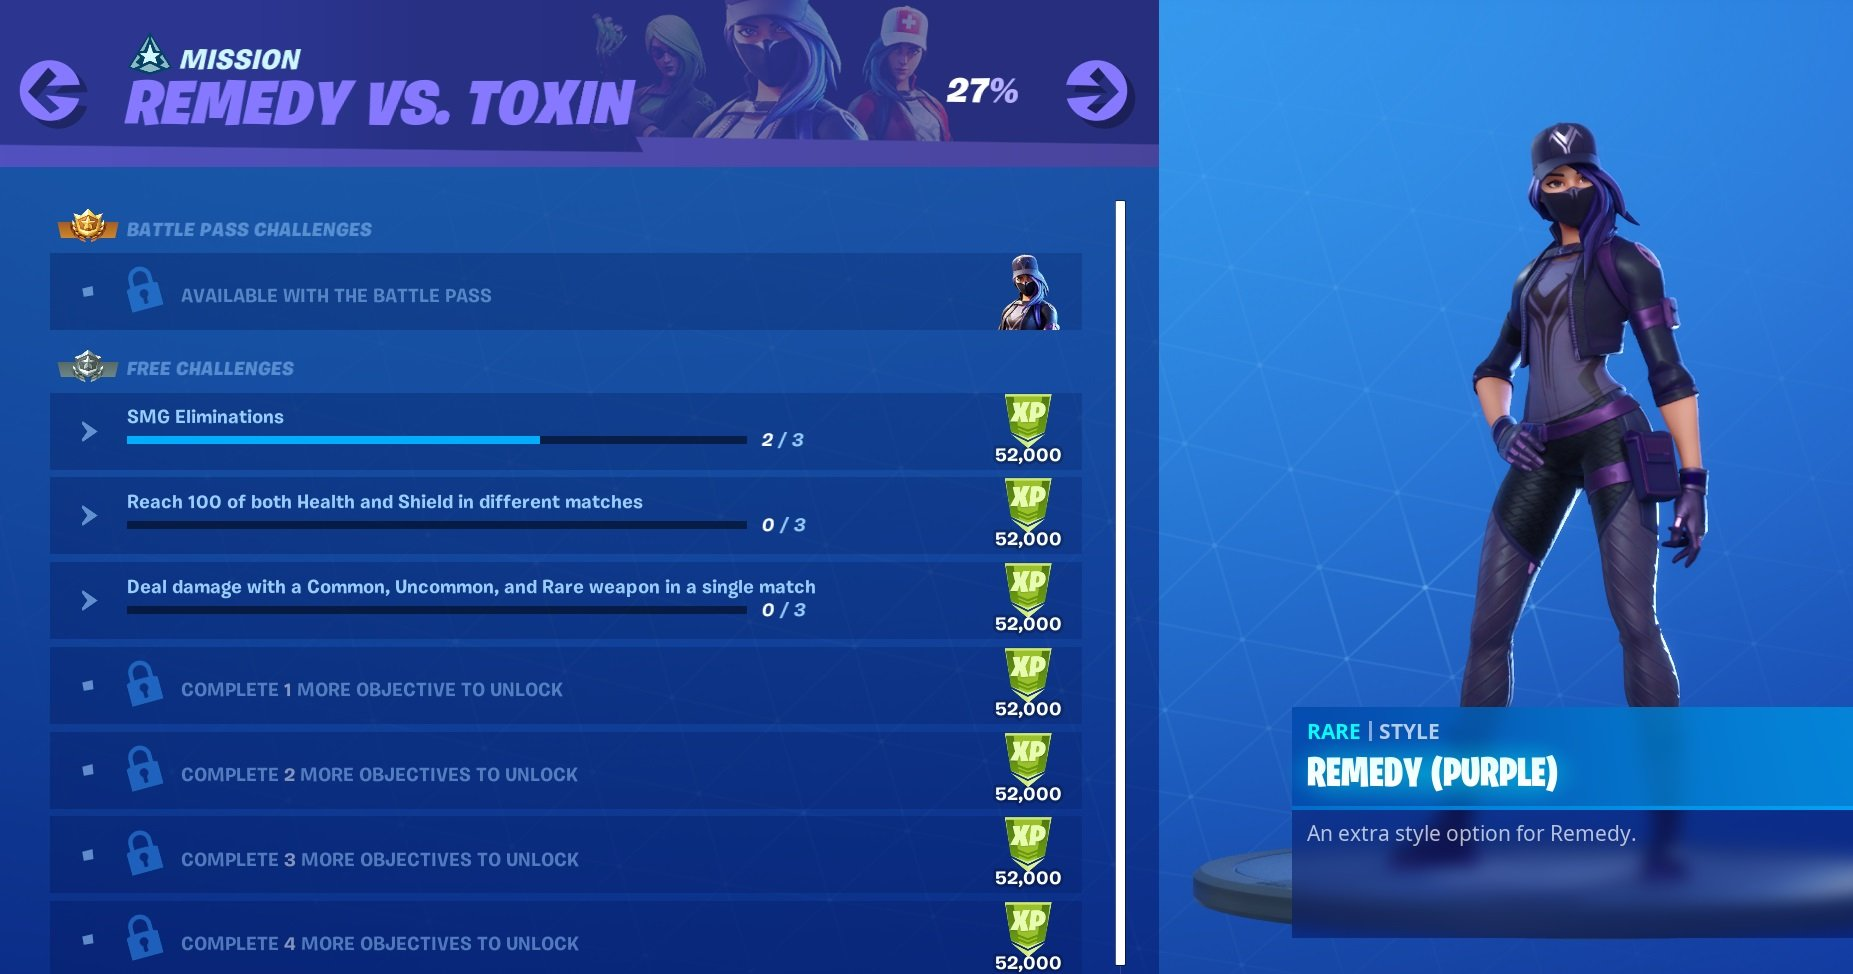 Fortnite Remedy vs. Toxin challenge list